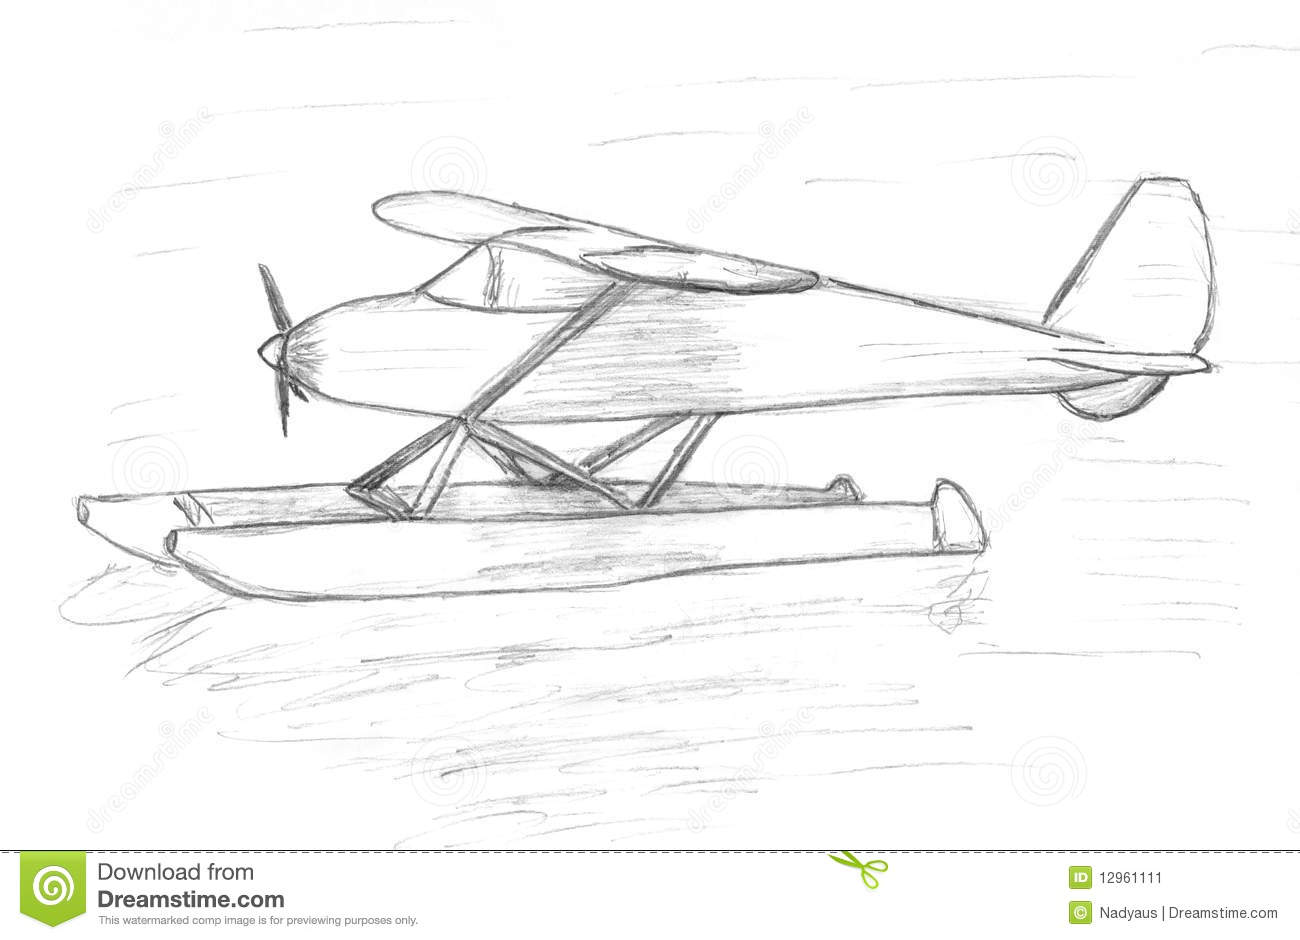 Easy Airplane Sits On The Water Sketch Stock Illustration